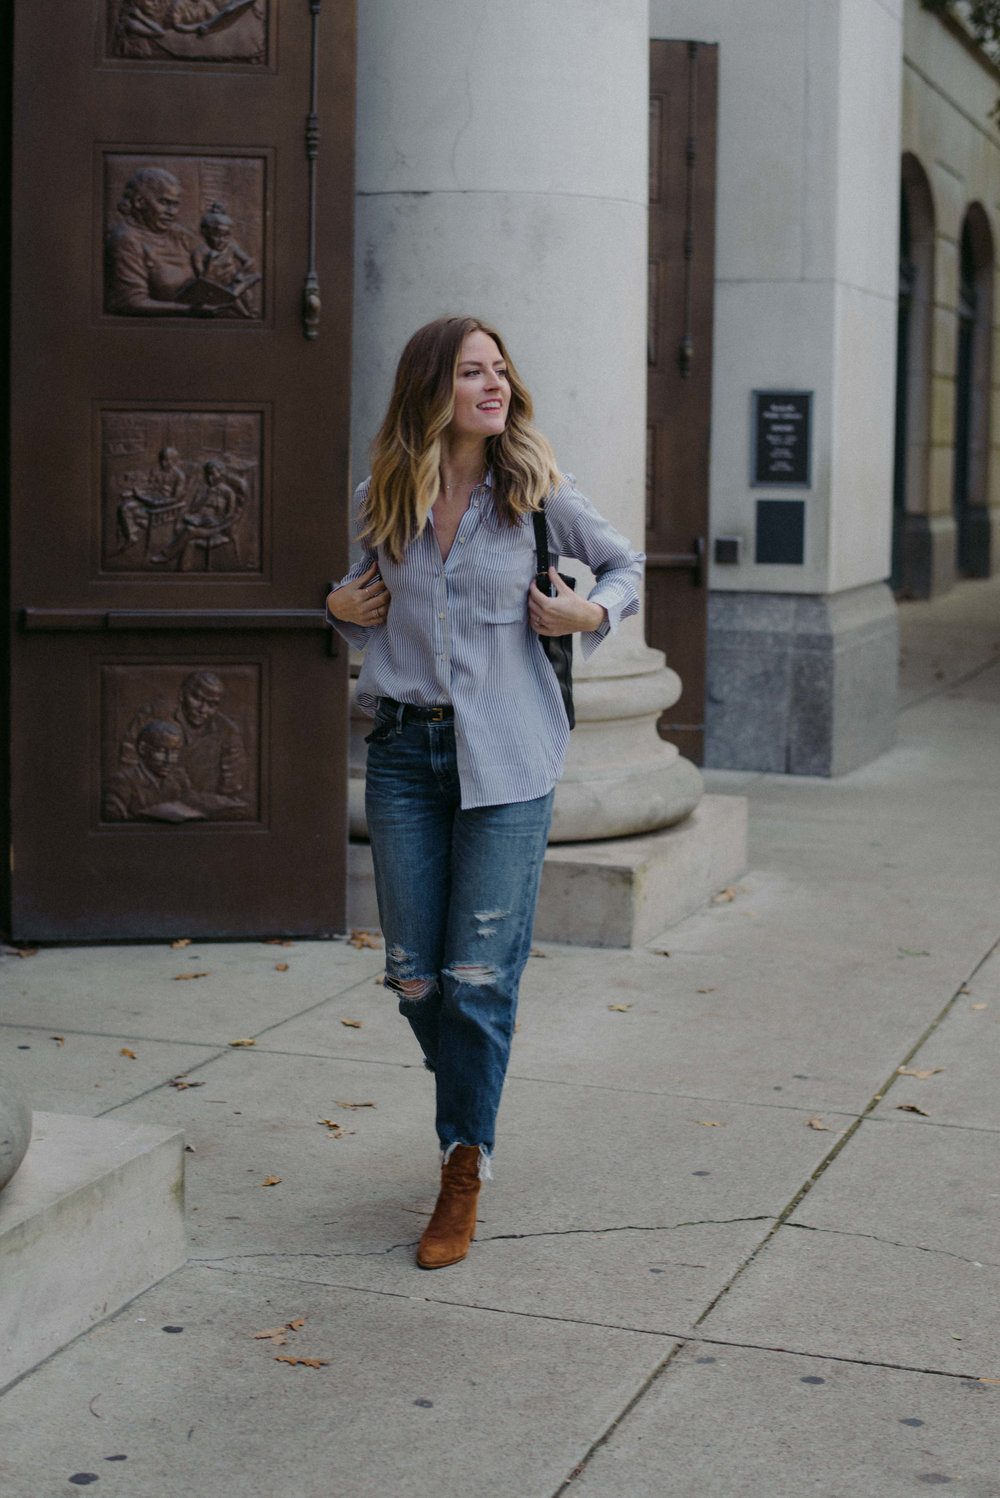 Nashville casual fall outfit // A Week Of  Nashville-Chic Ethical Outfits With Jordan Soderholm, Fashion Director At ABLE on The Good Trade